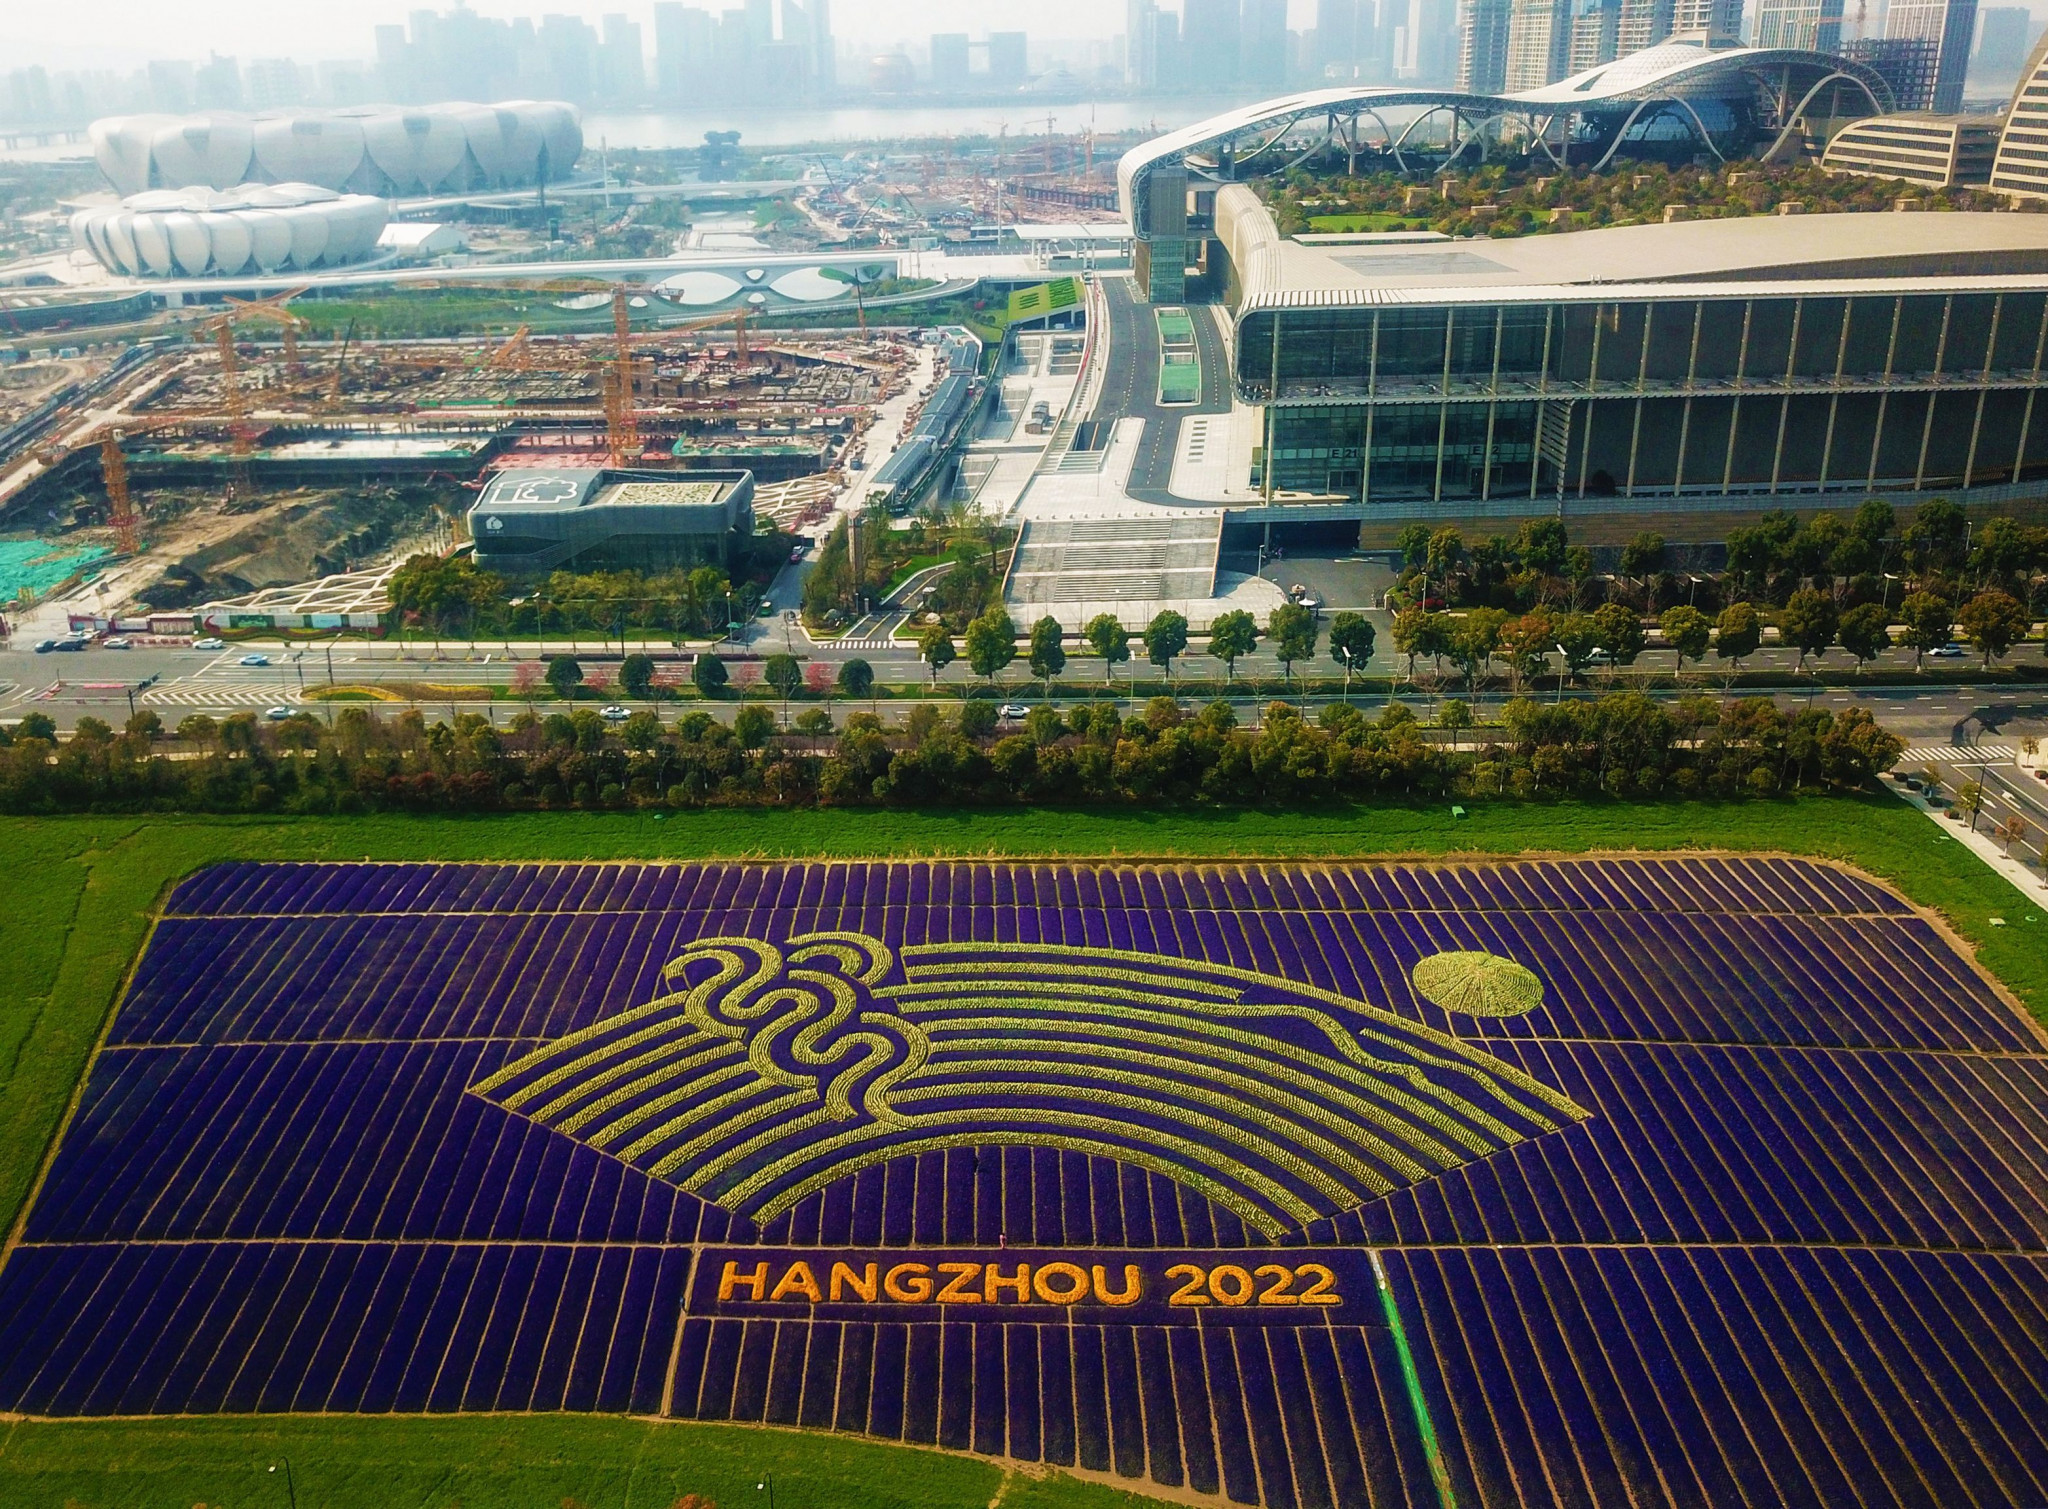 Hangzhou 2022 dreams campaign receives more than 100,000 submissions